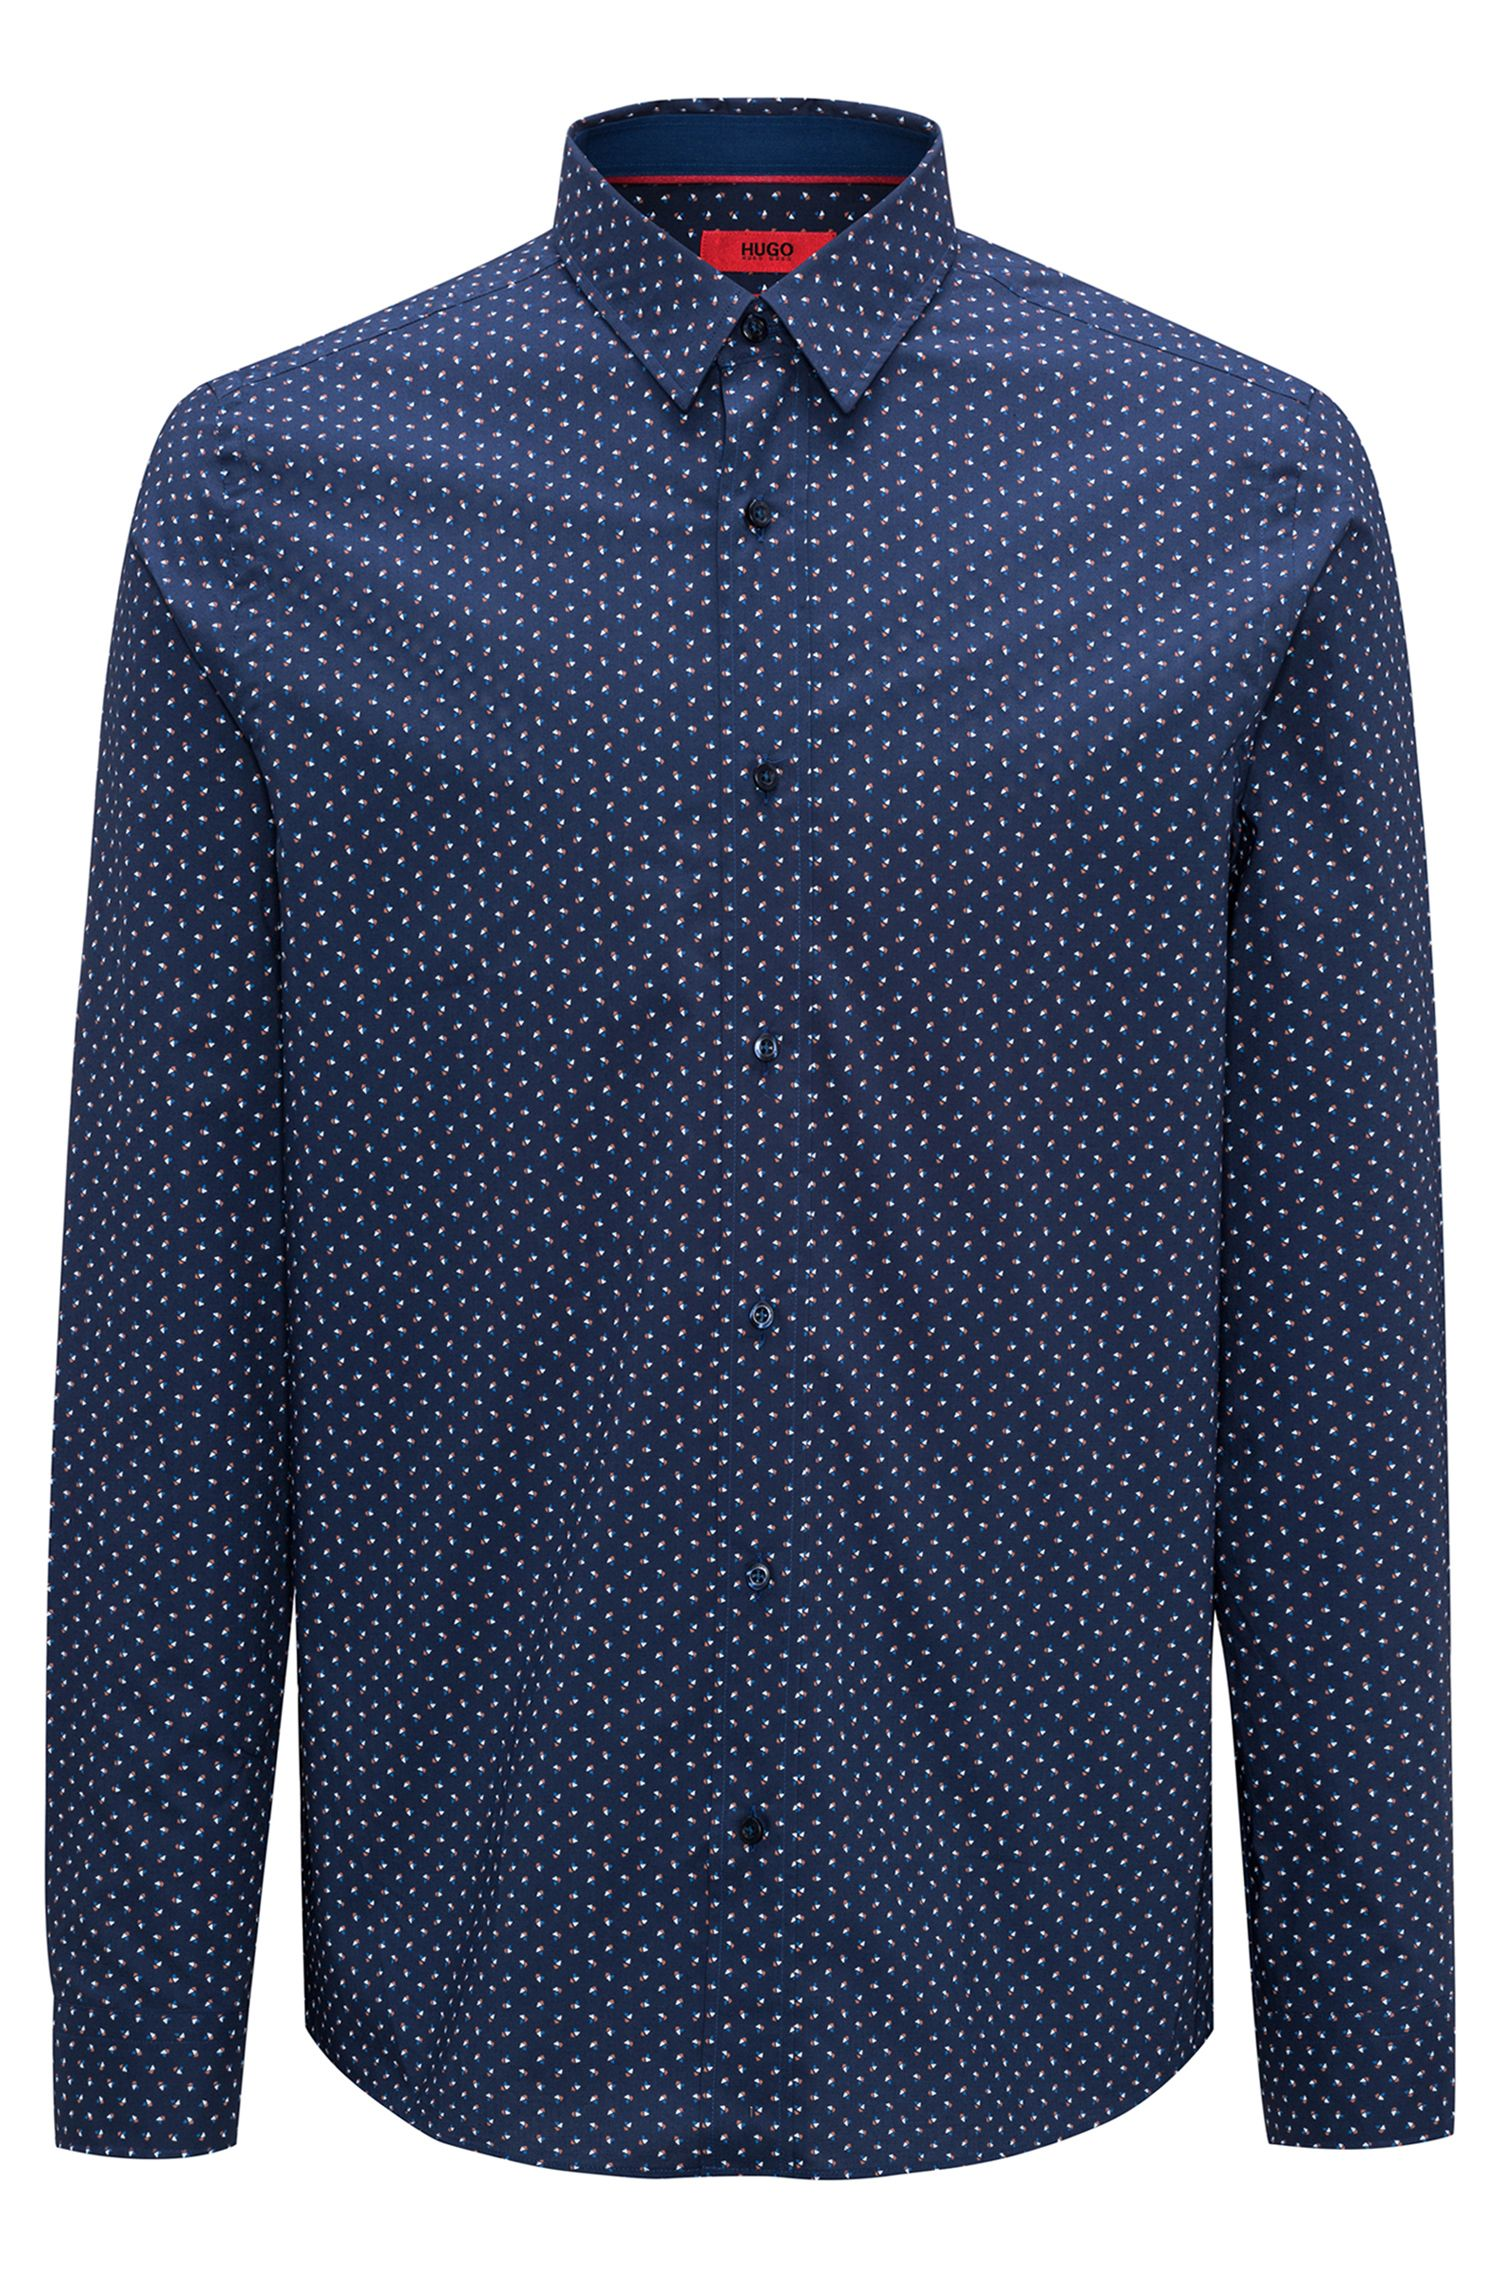 Camisa relaxed fit de algodón con estampado integral